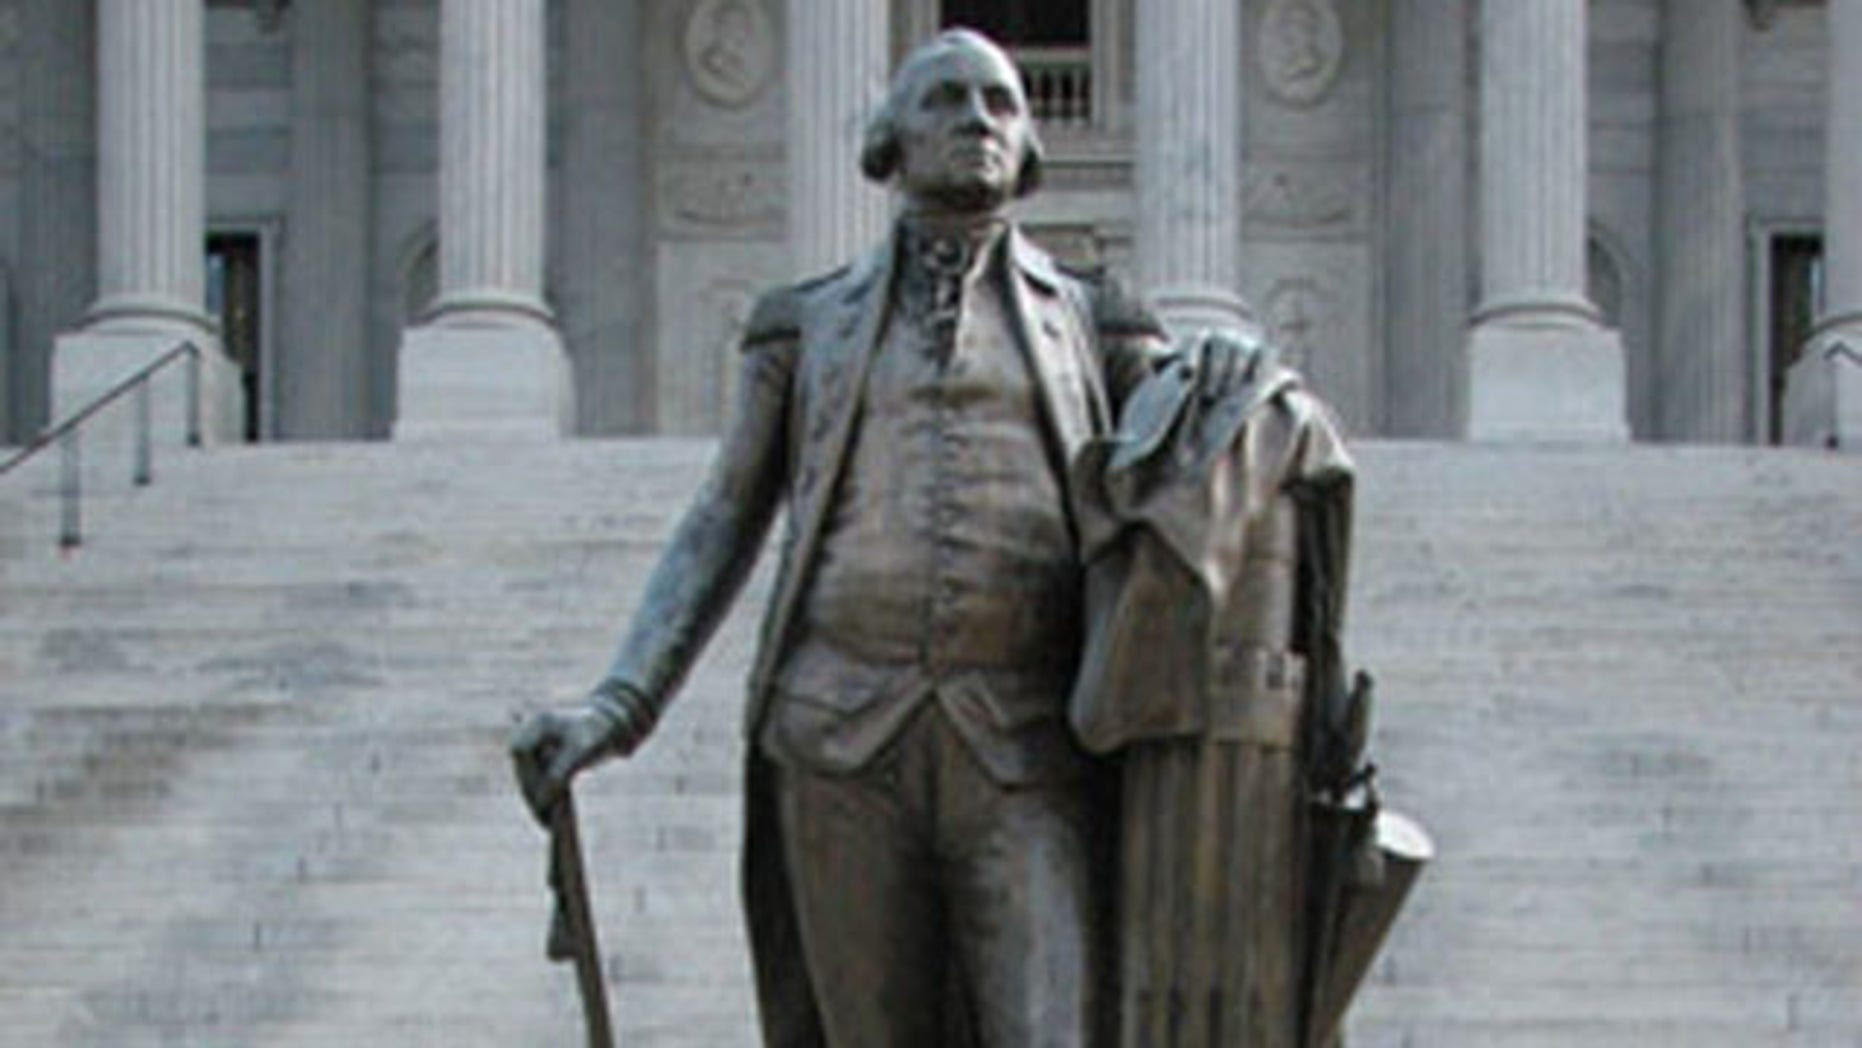 Shown here is the bronze statue of George Washington outside the State House in Columbia, S.C.